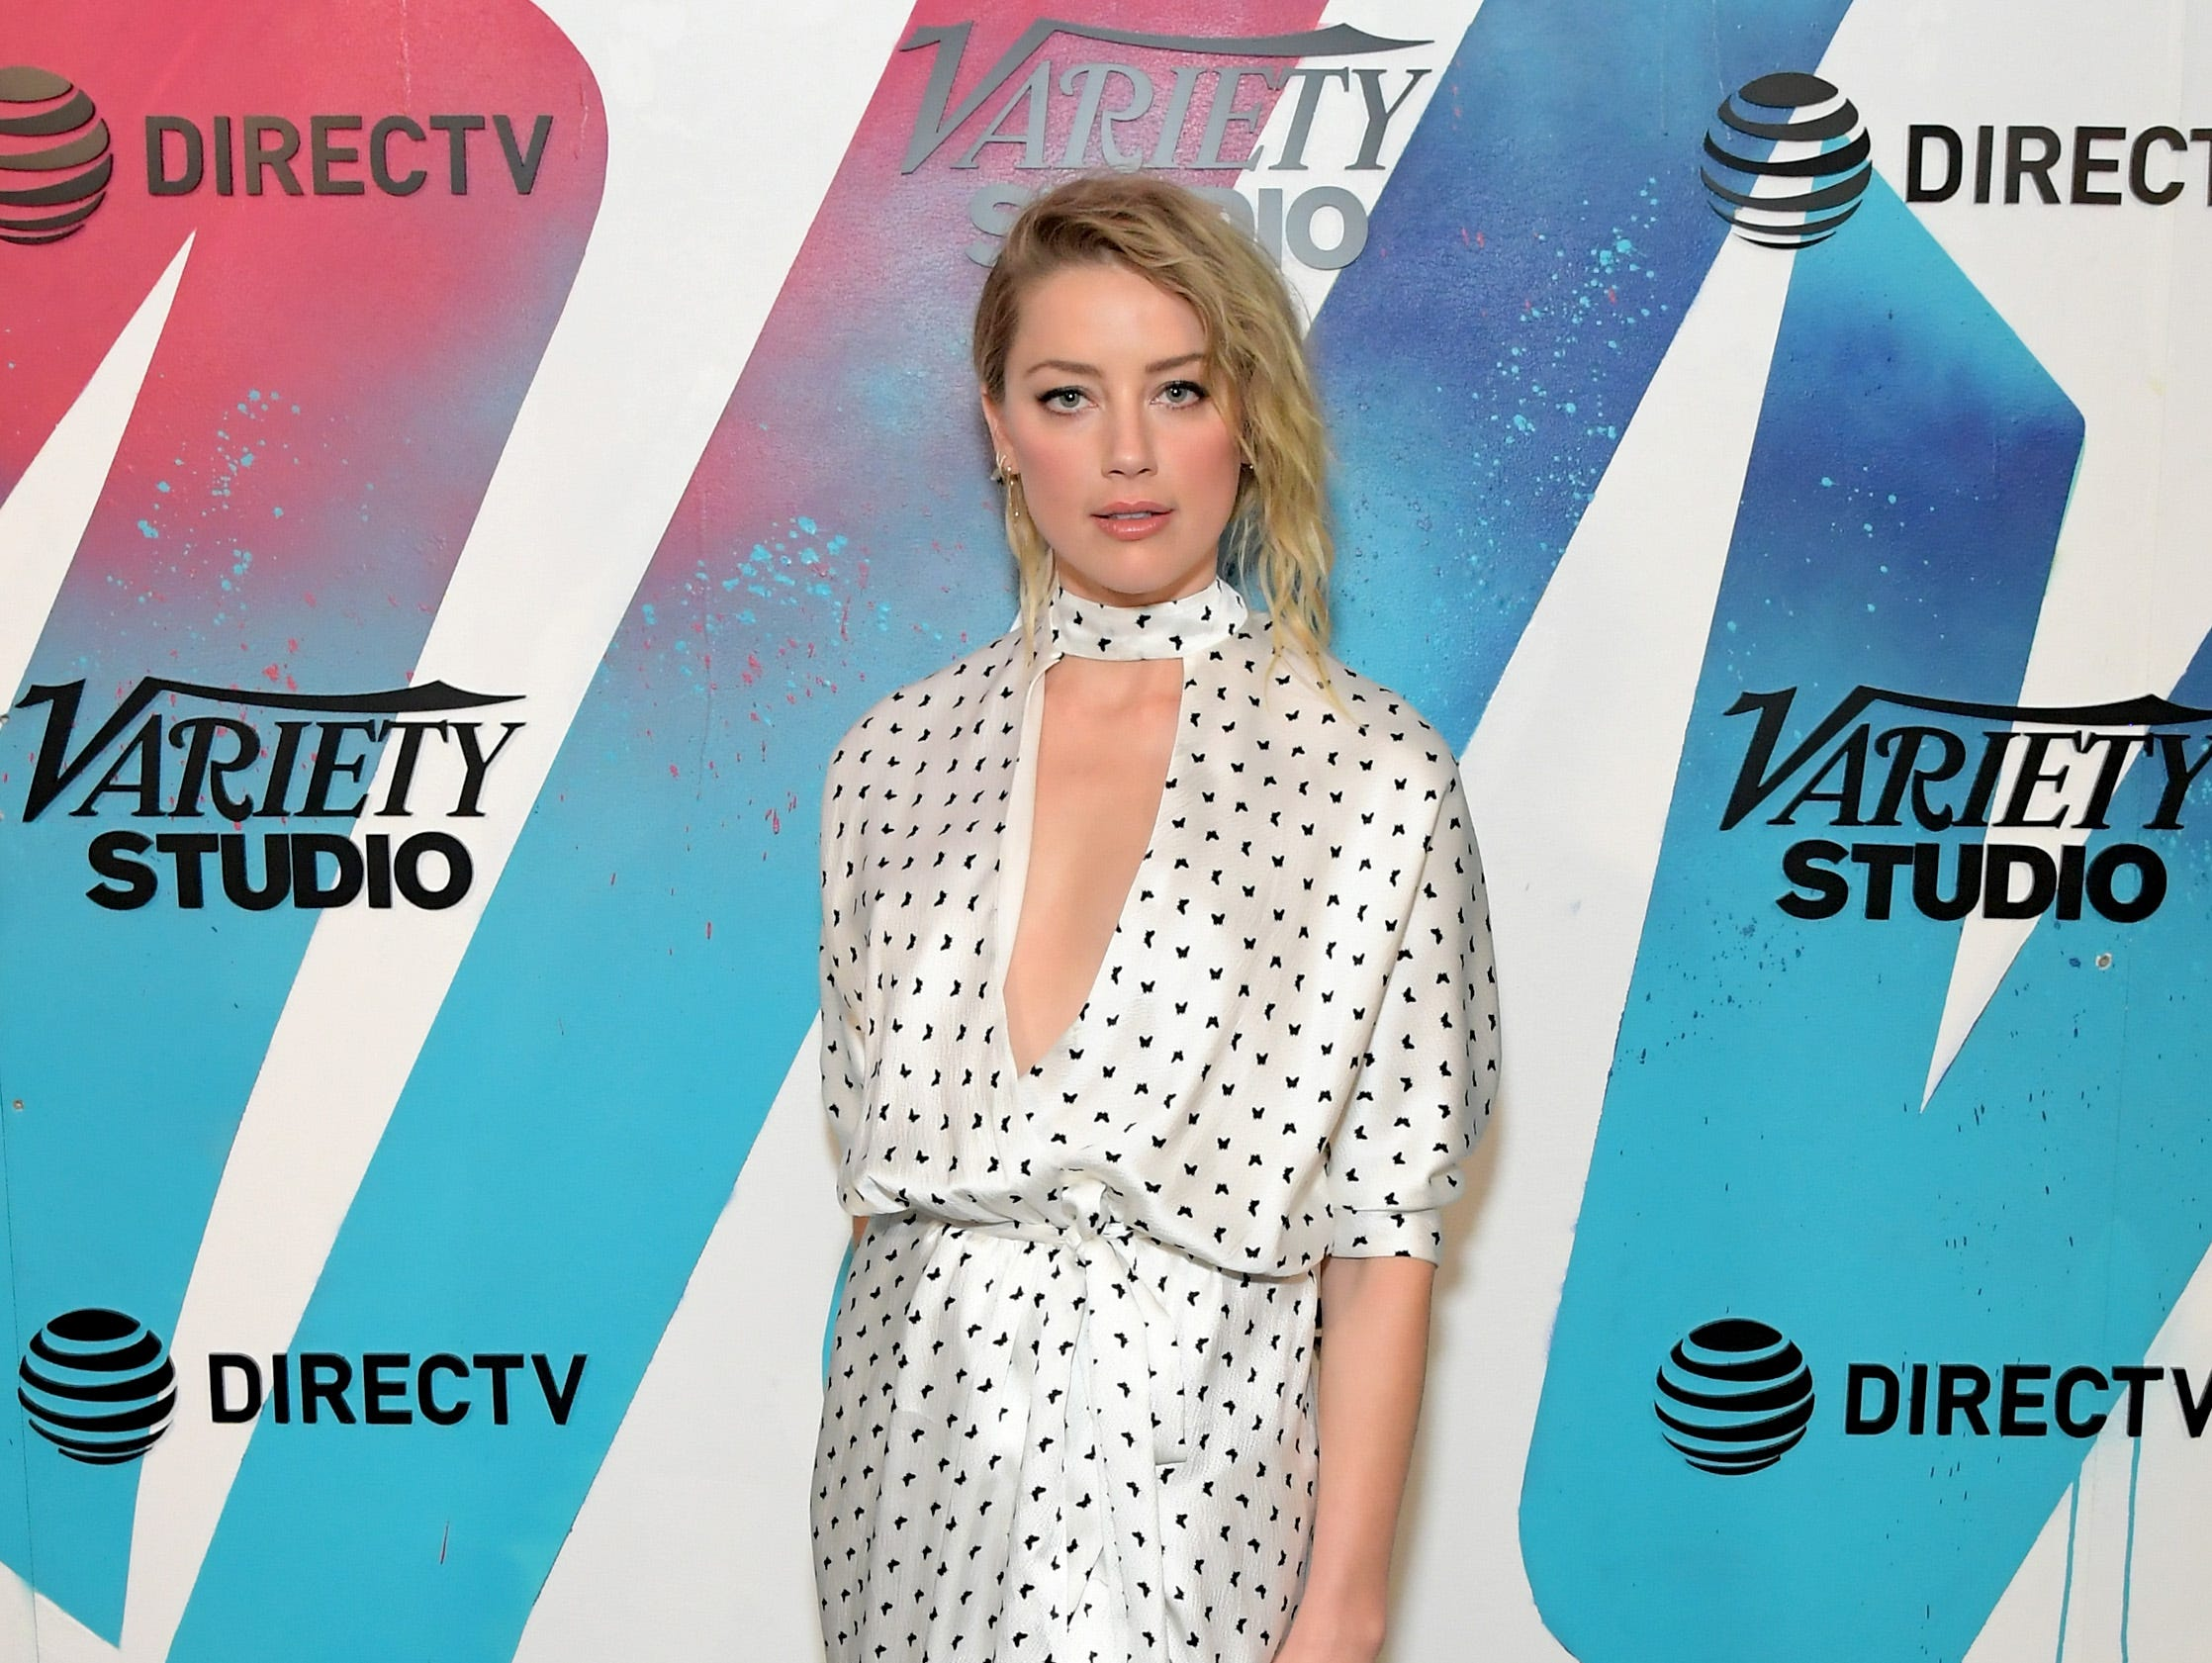 TORONTO, ON - SEPTEMBER 09:  Amber Heard stops by DIRECTV House presented by AT&T during Toronto International Film Festival 2018 at Momofuku Toronto on on September 9, 2018 in Toronto, Canada.  (Photo by Charley Gallay/Getty Images for AT&T and DIRECTV ) ORG XMIT: 775223969 ORIG FILE ID: 1029946416